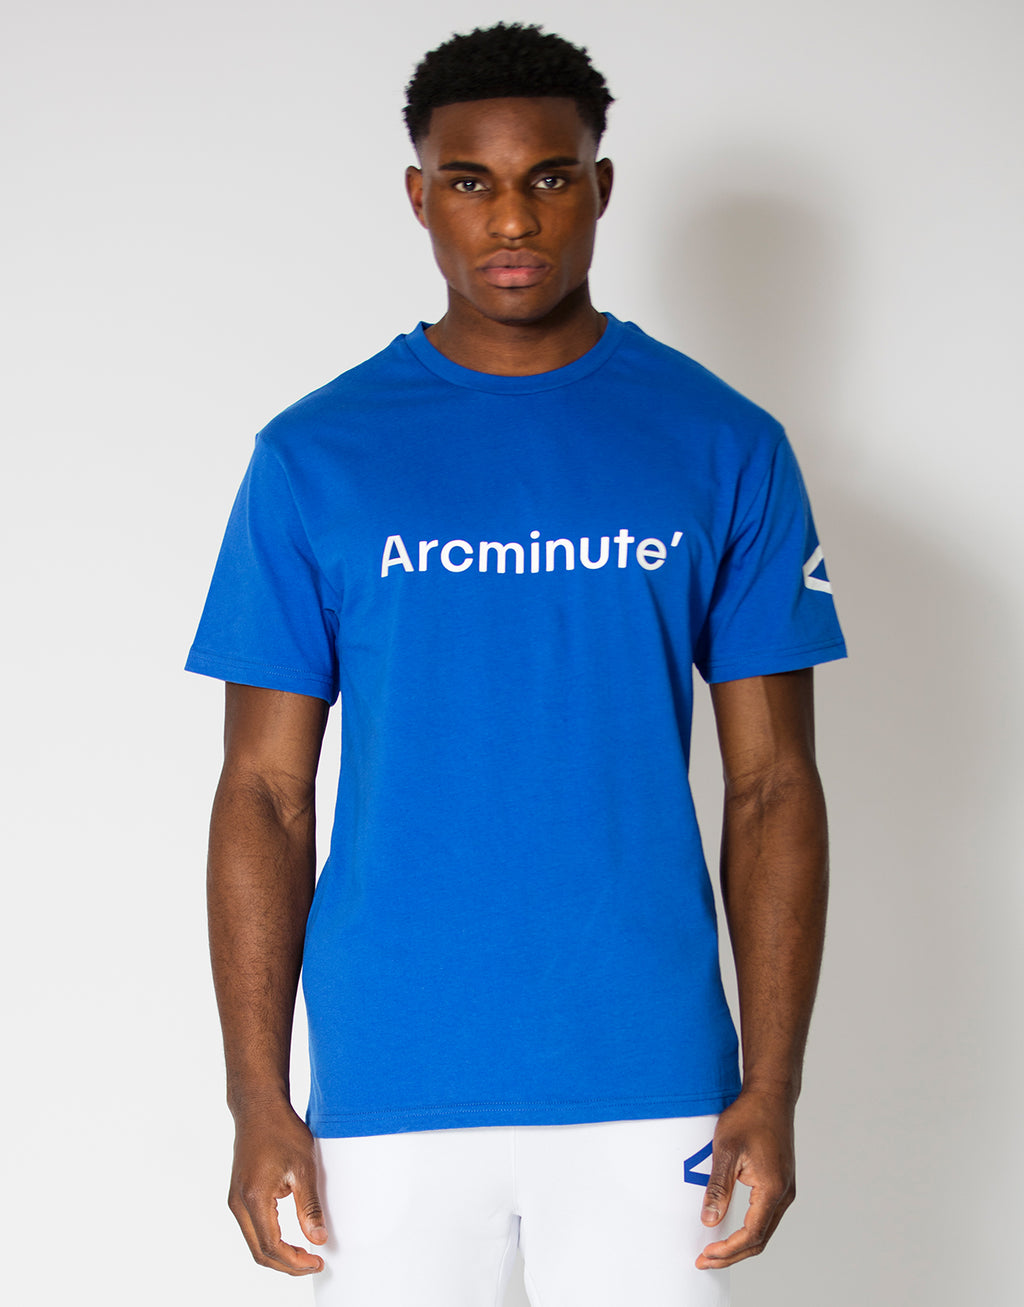 Haise T-Shirt Blue - Arcminute